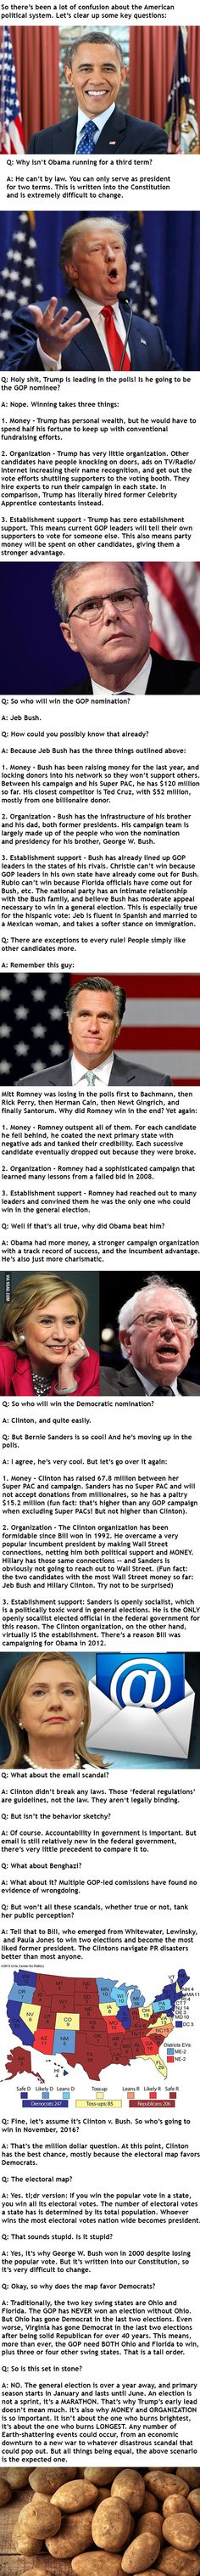 The likely scenarios in American politics aptly and clearly presented in this incredible primer. http://9gag.com/gag/anBz6jq